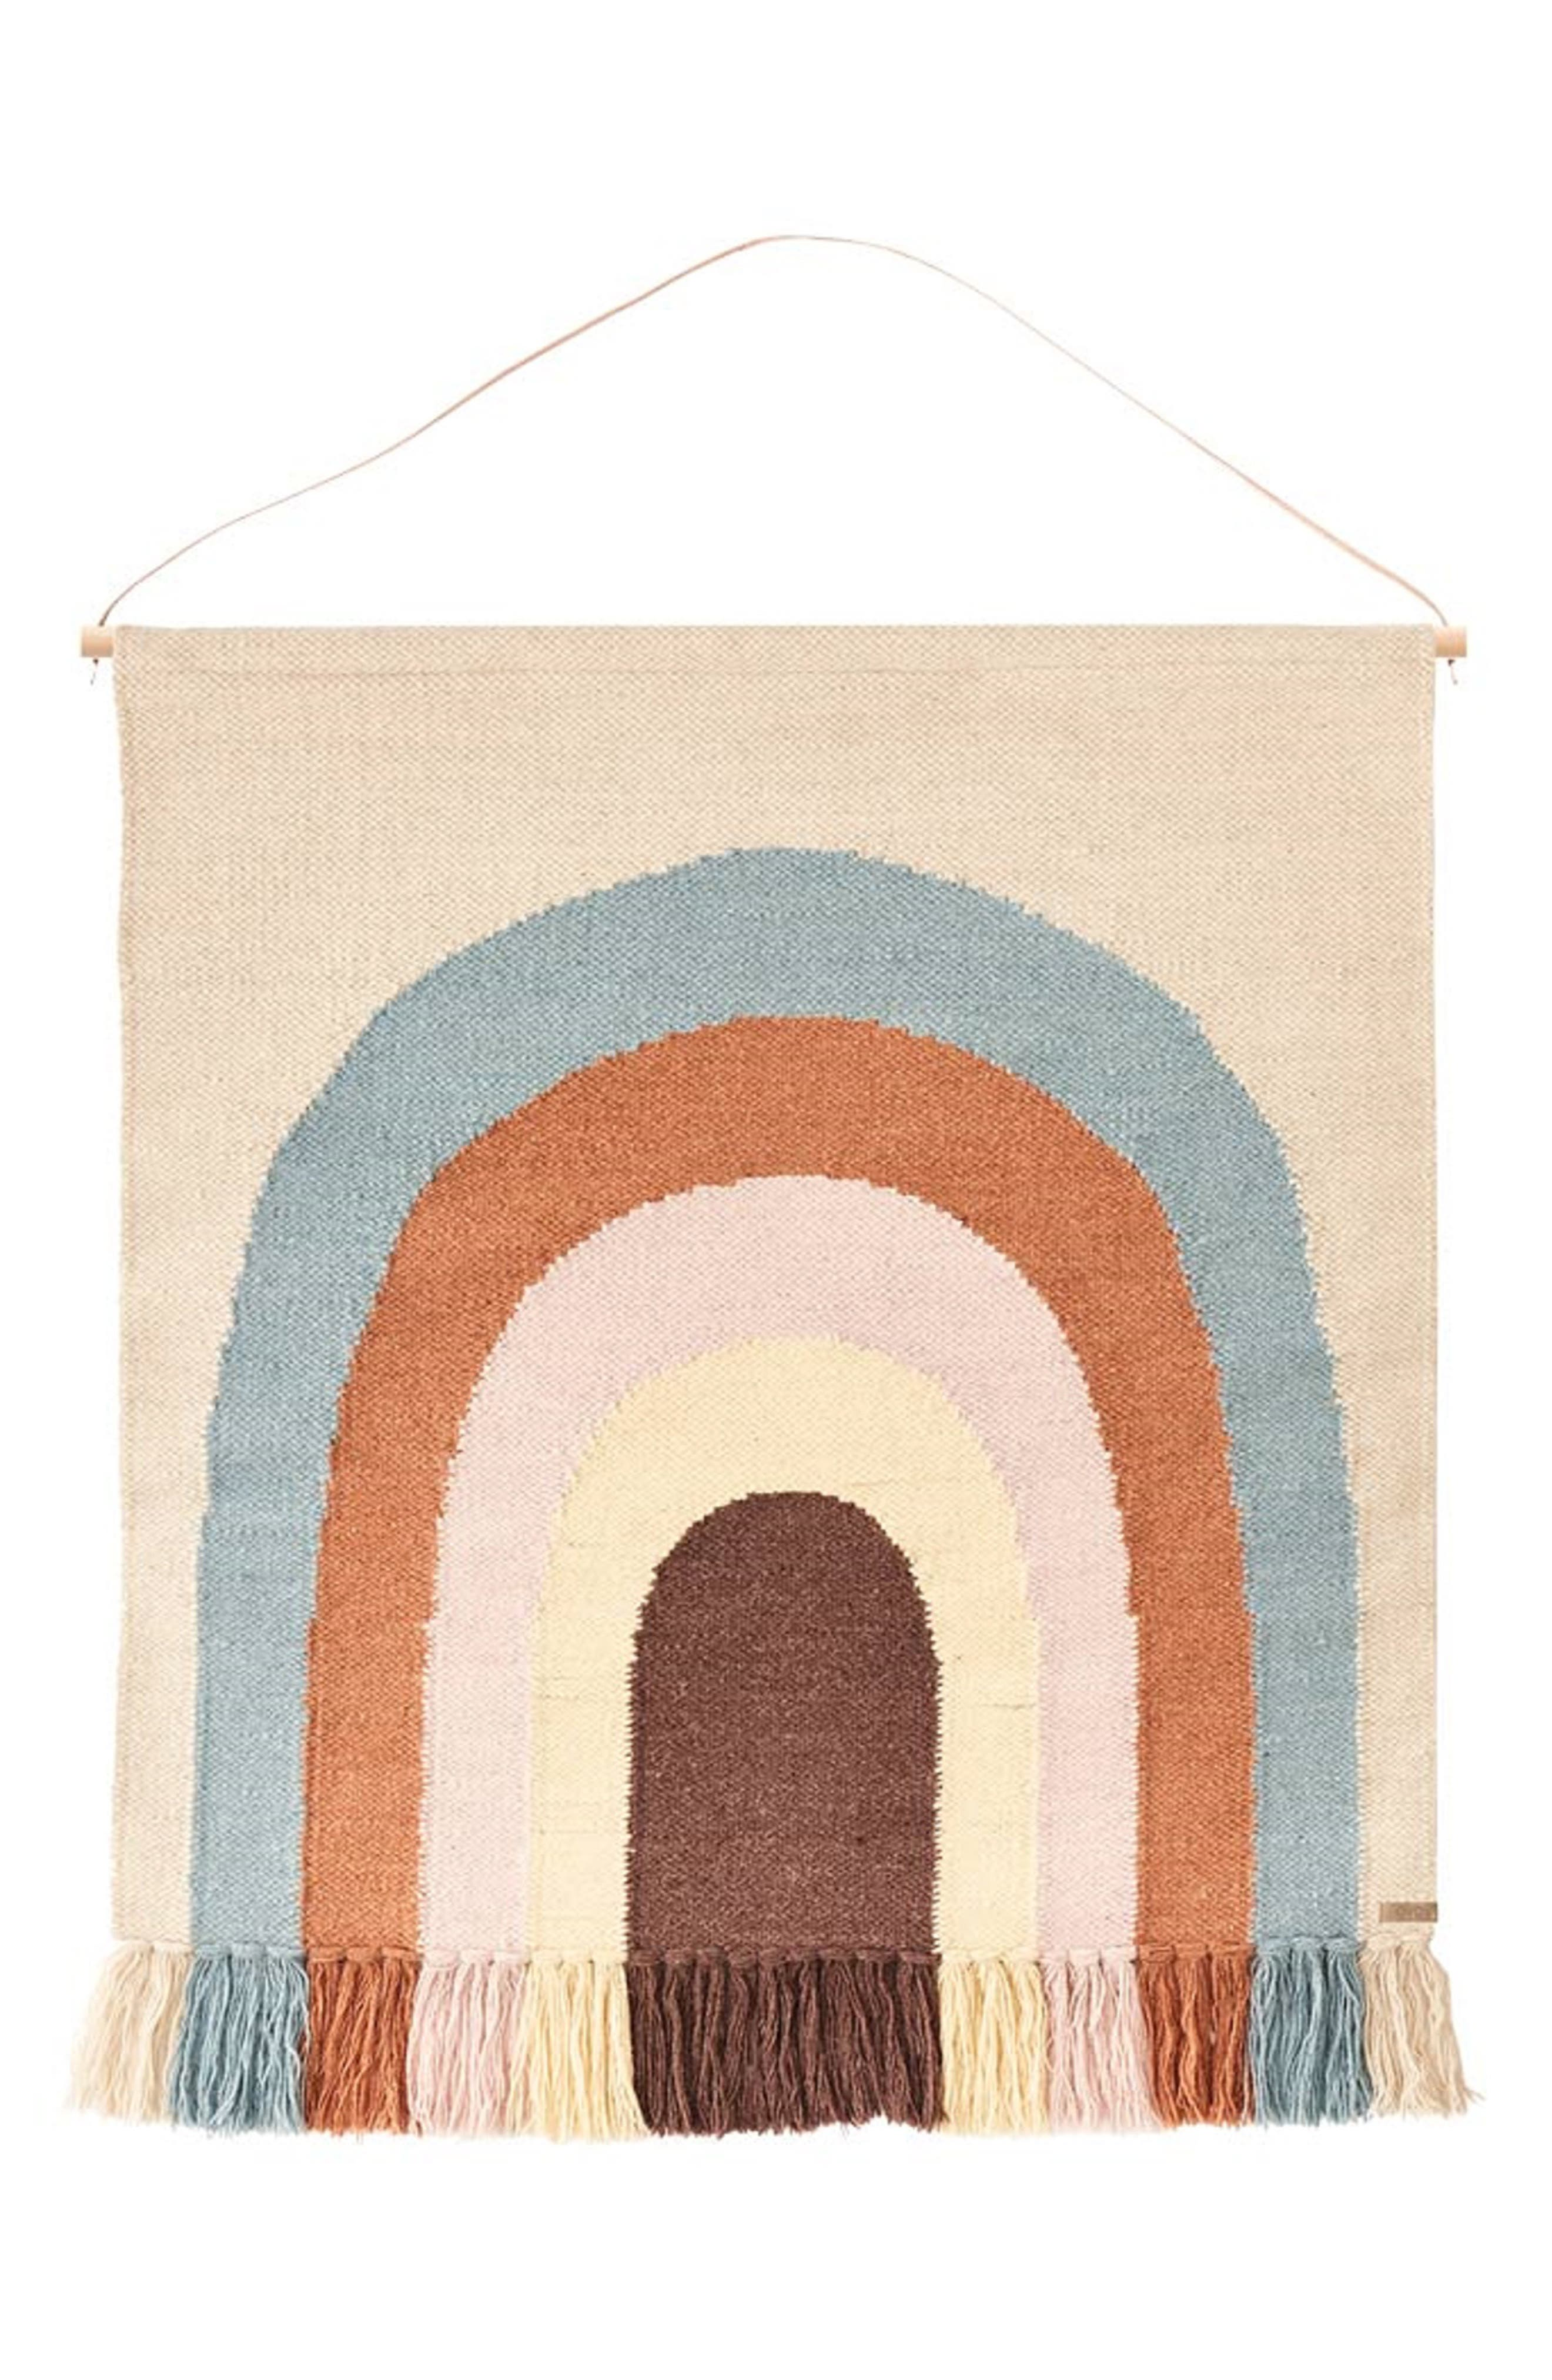 The Danish design brand brings the joy of rainbows indoors with this colorful, fringe-trimmed wall hanging woven from wool and cotton yarns. Style Name: Oyoy Follow The Rainbow Wall Hanging. Style Number: 6158504. Available in stores.